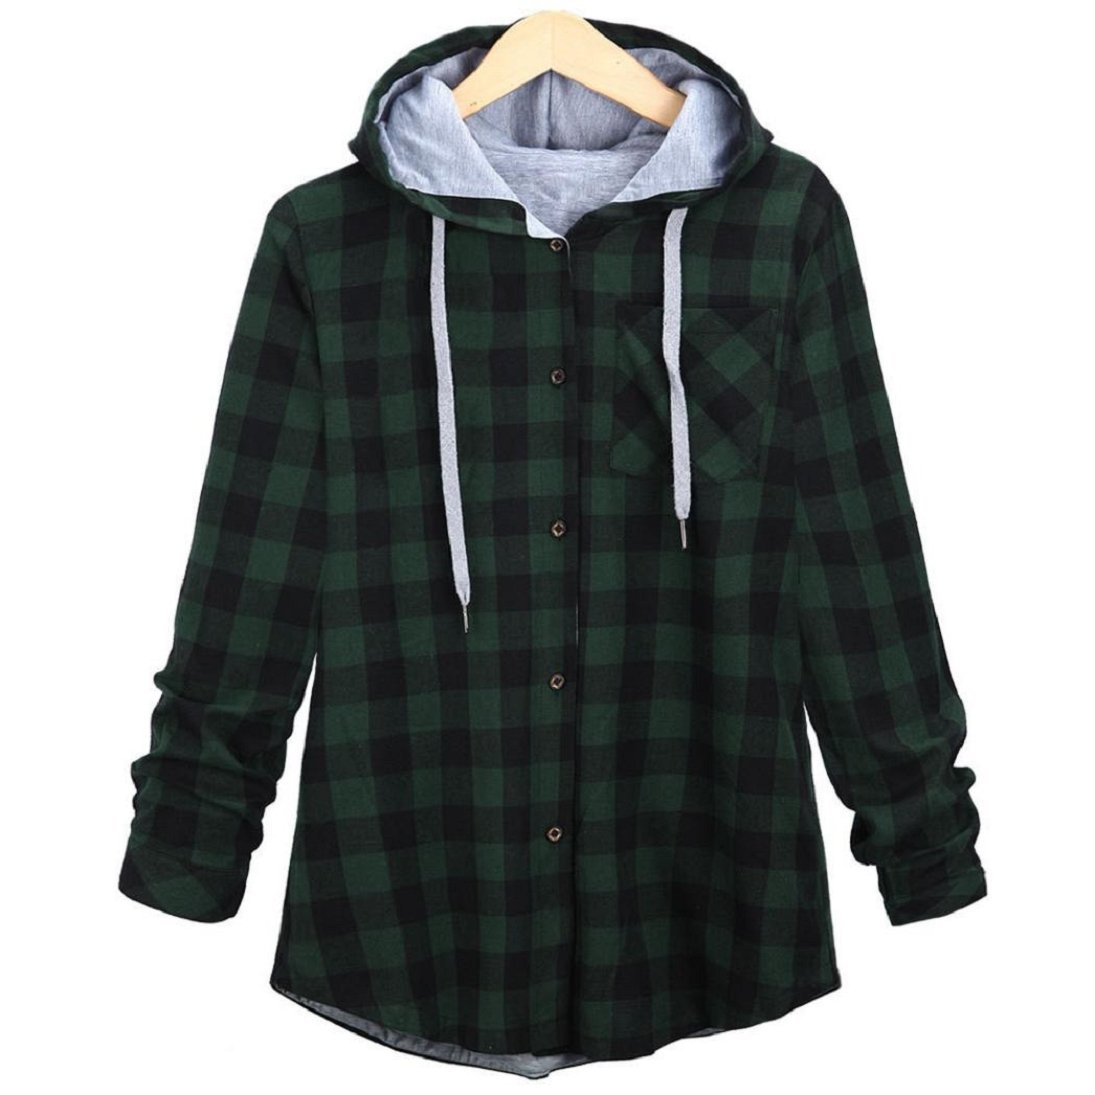 Fheaven Women Leisure Autumn and Winter New Long Hooded Plaid Cardigan Jacket (M, Green)